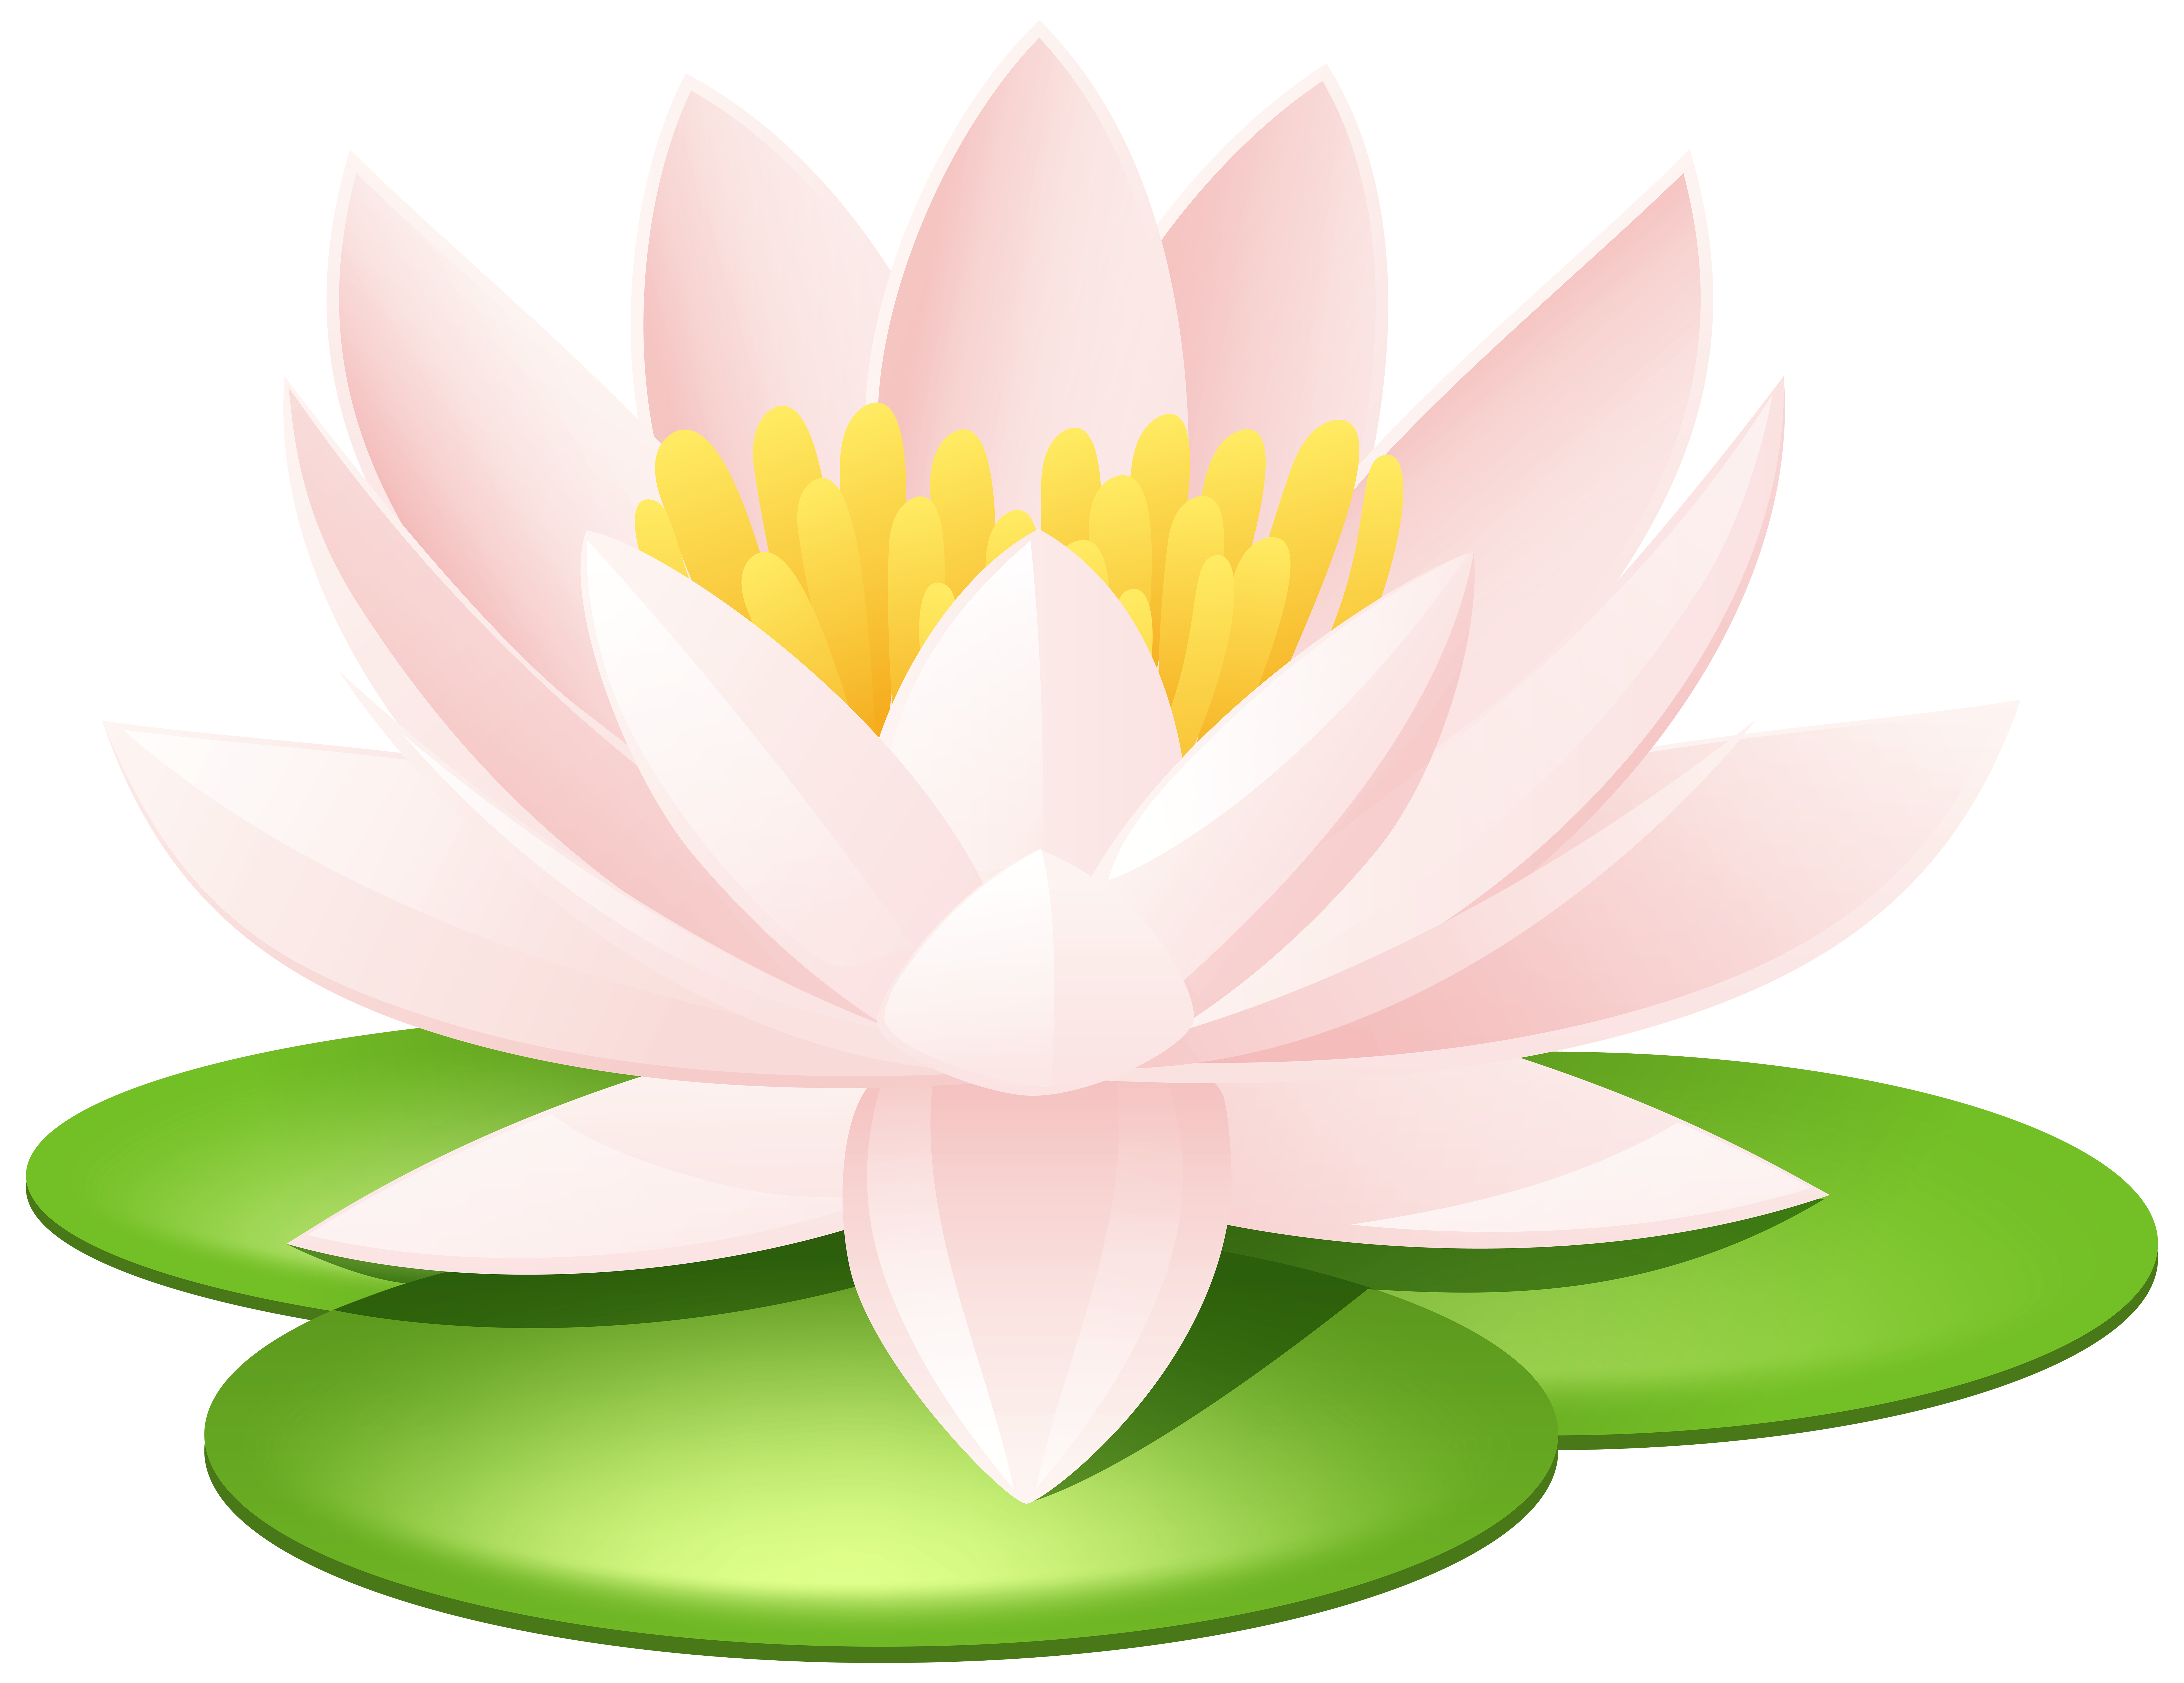 Water Lily Transparent PNG Image.